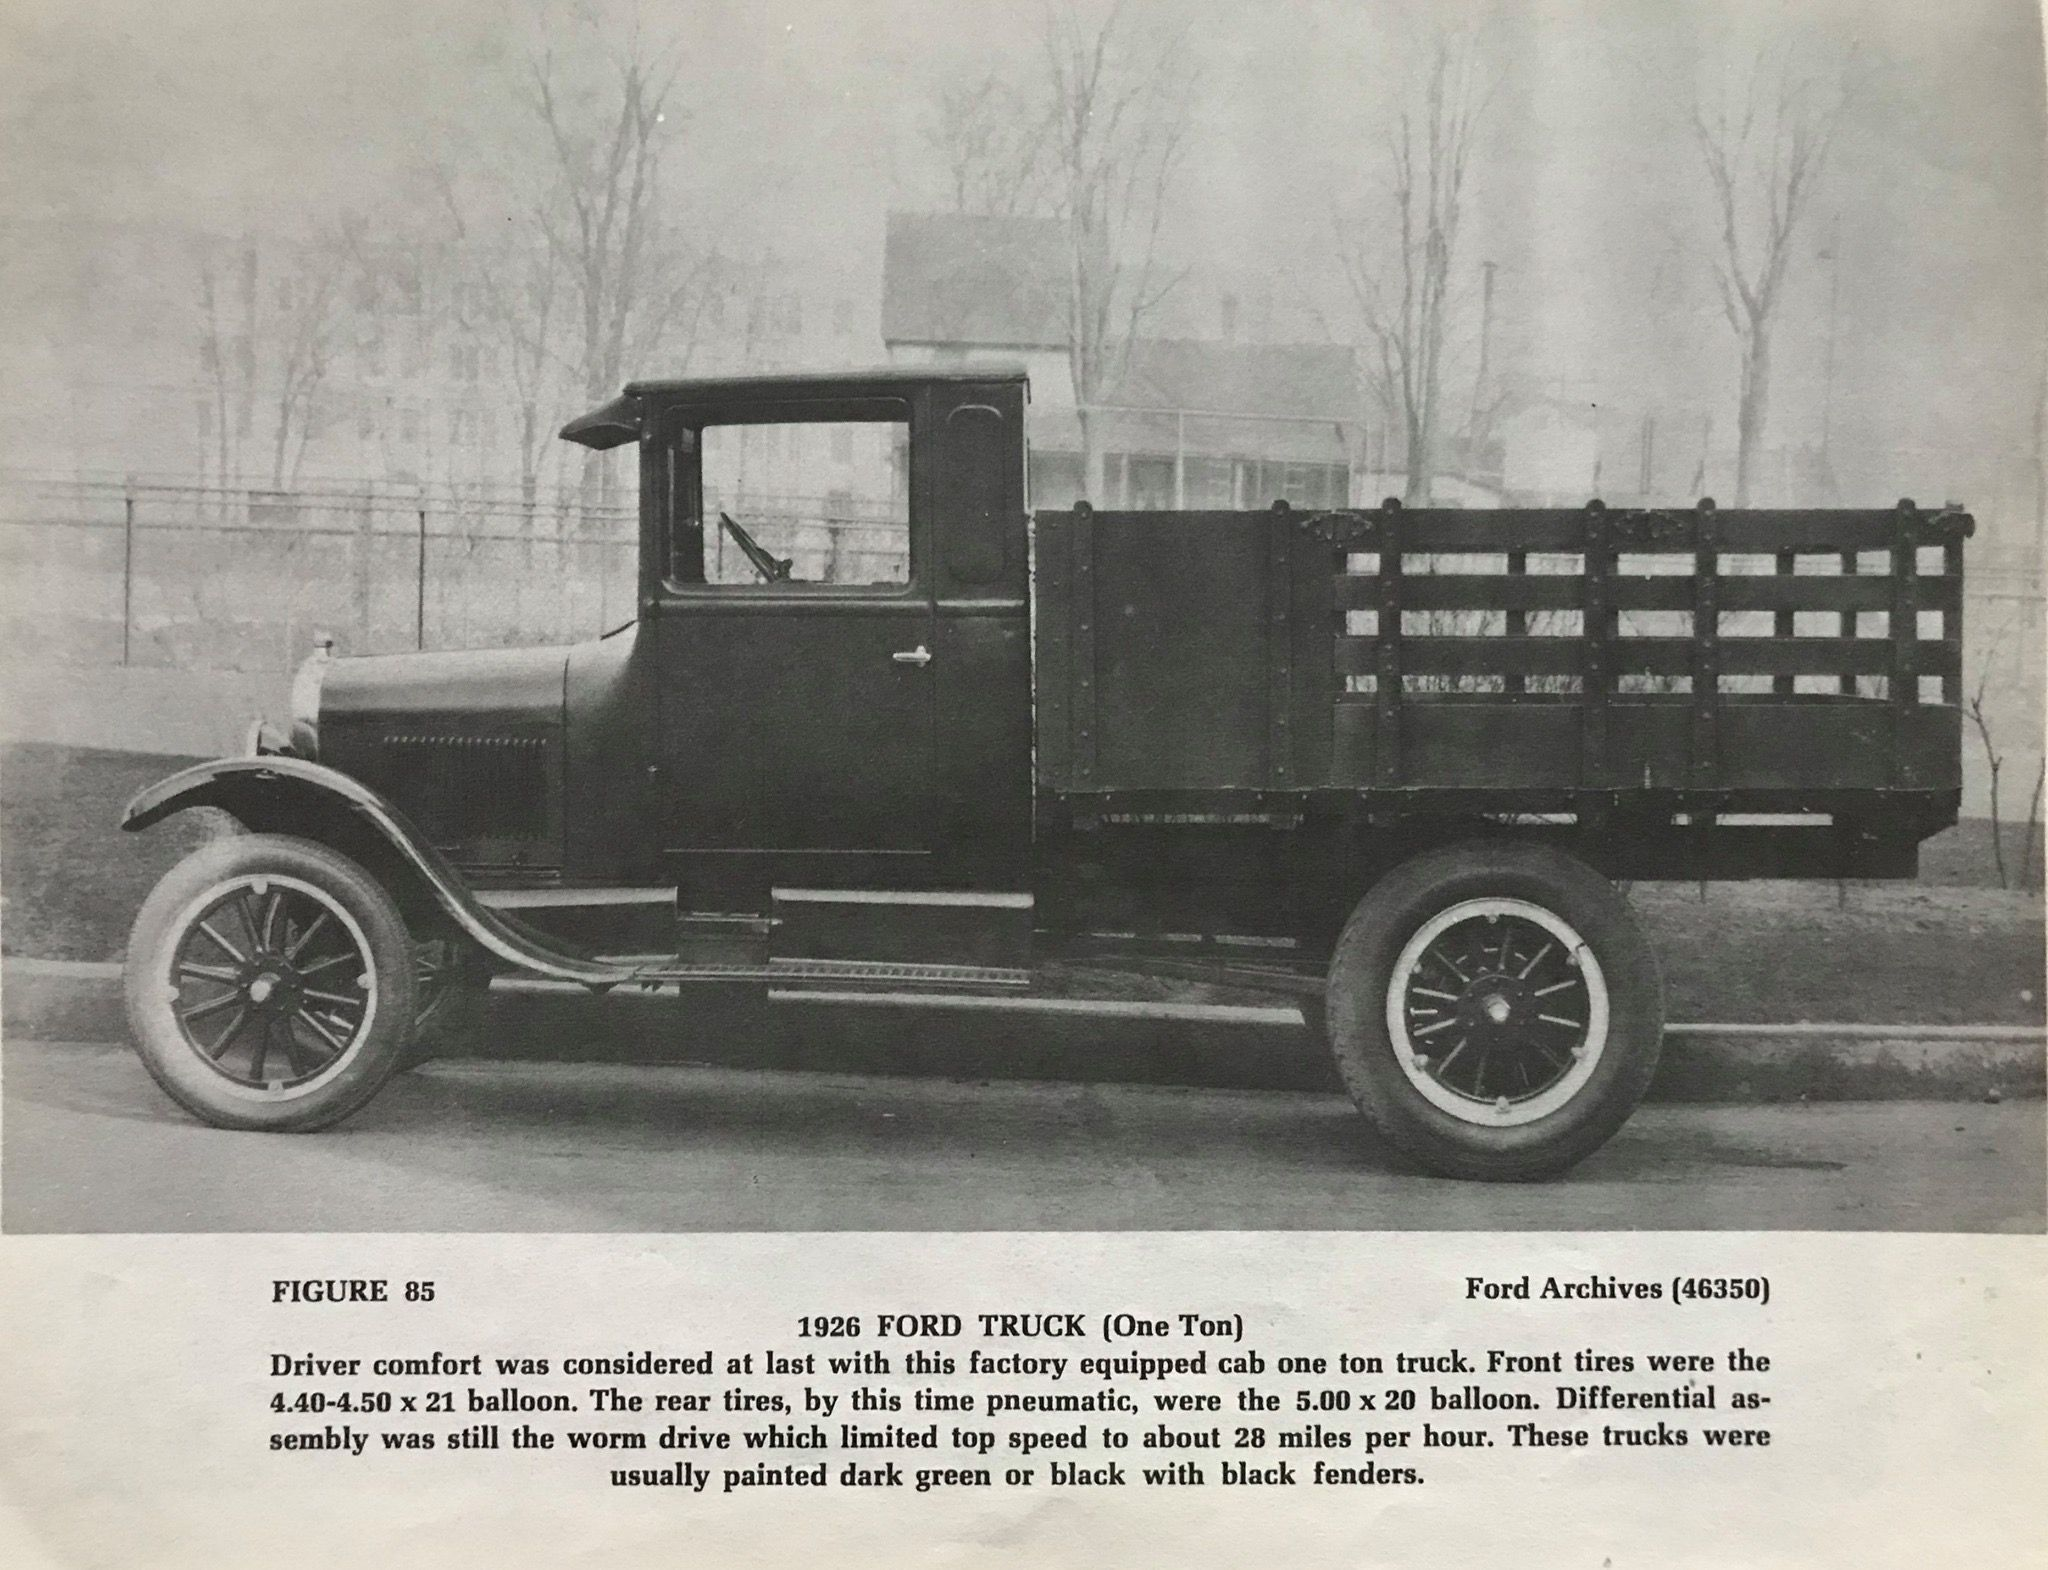 Pin by William Belanger Jr. on Trucks Trucks, Antique